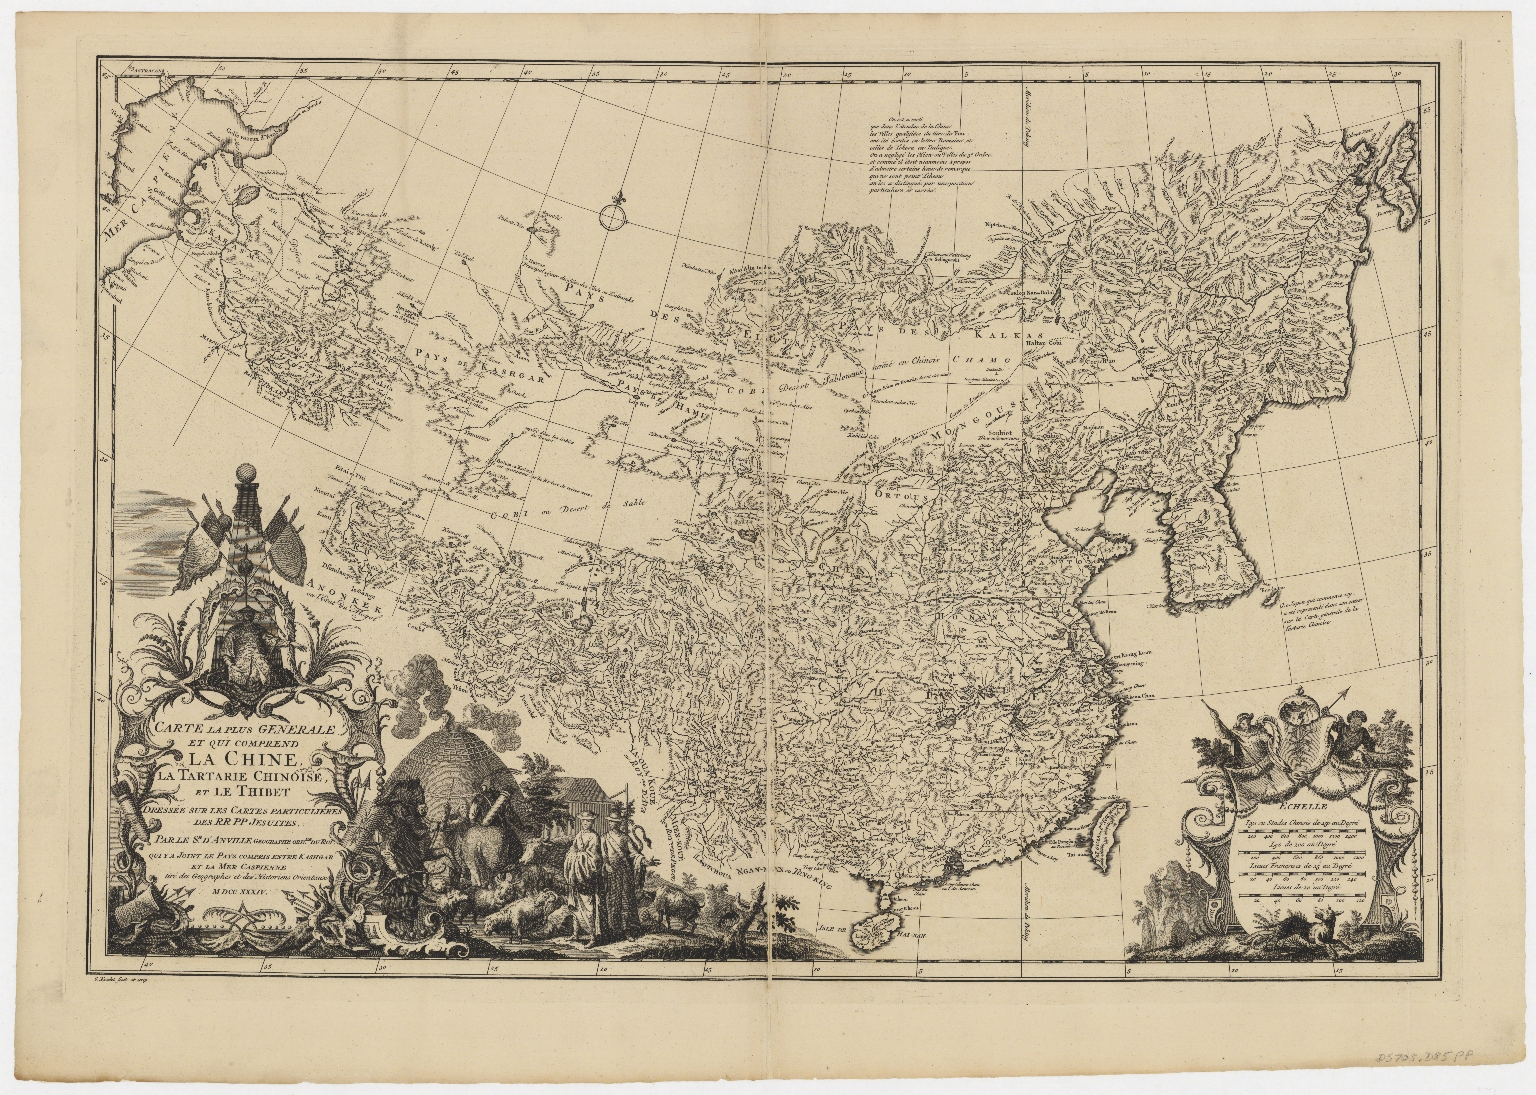 d'Anville map of Chinese Empire